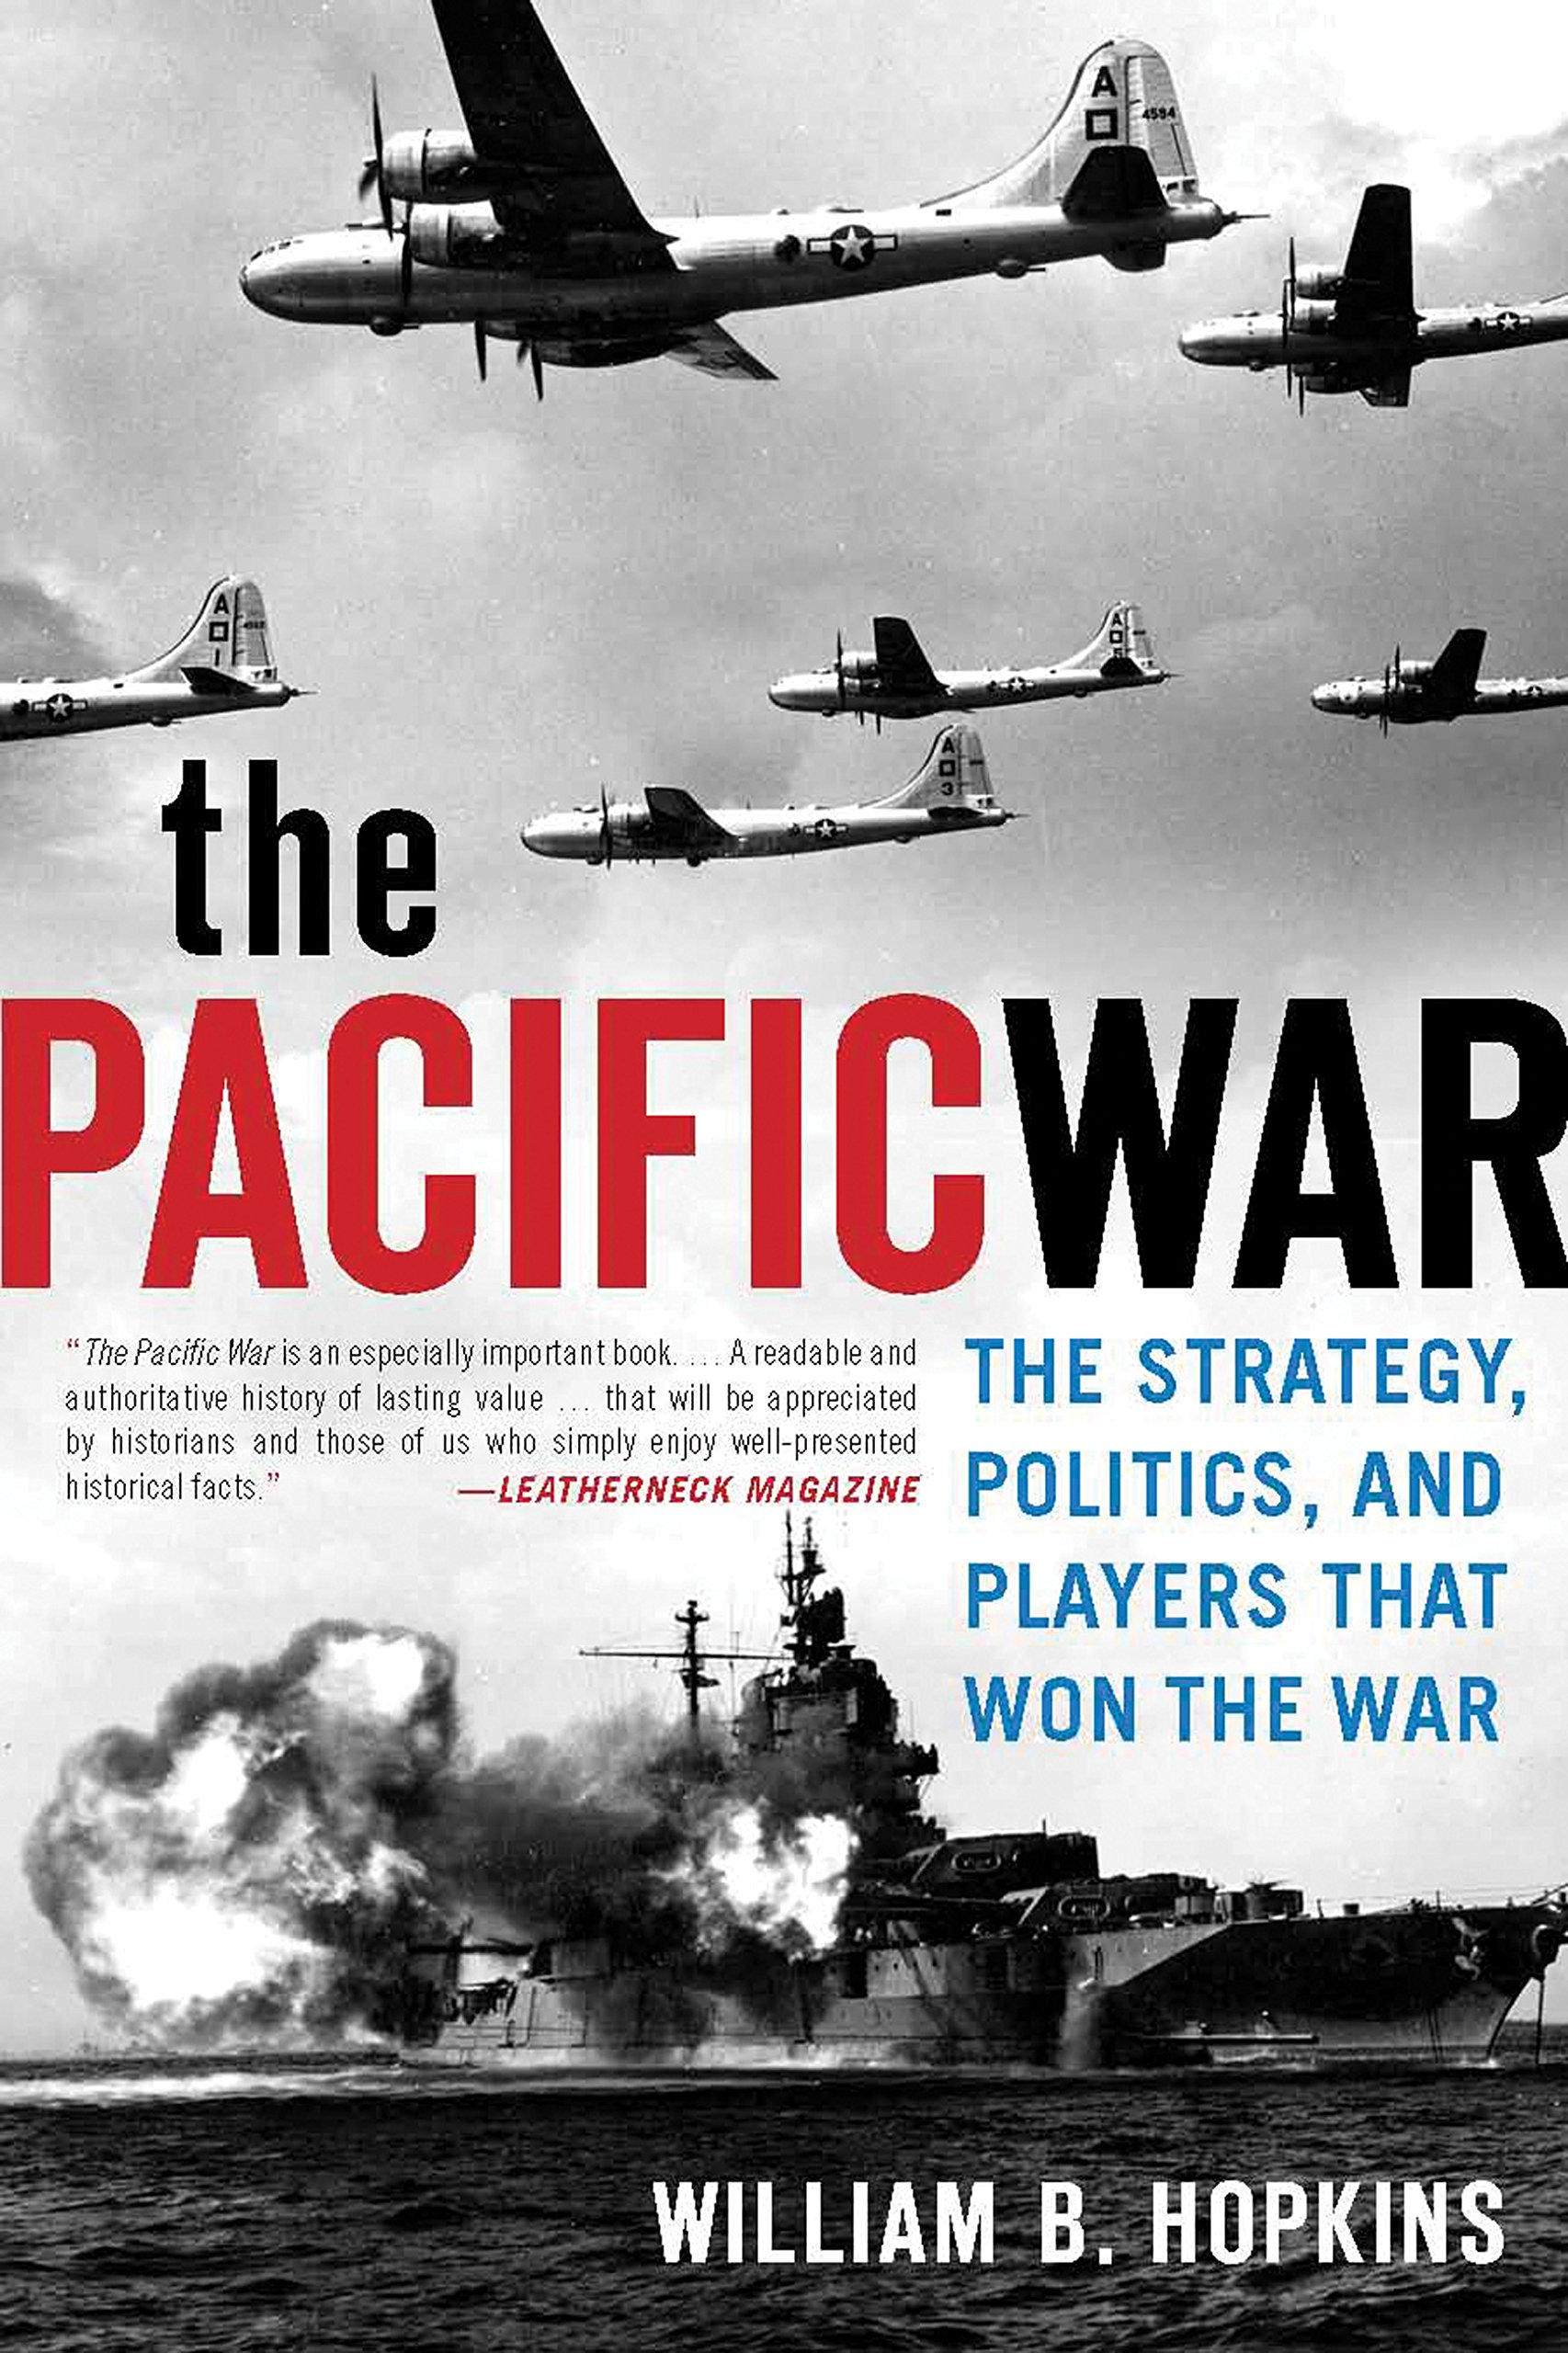 The Pacific War: The Strategy, Politics, and Players that